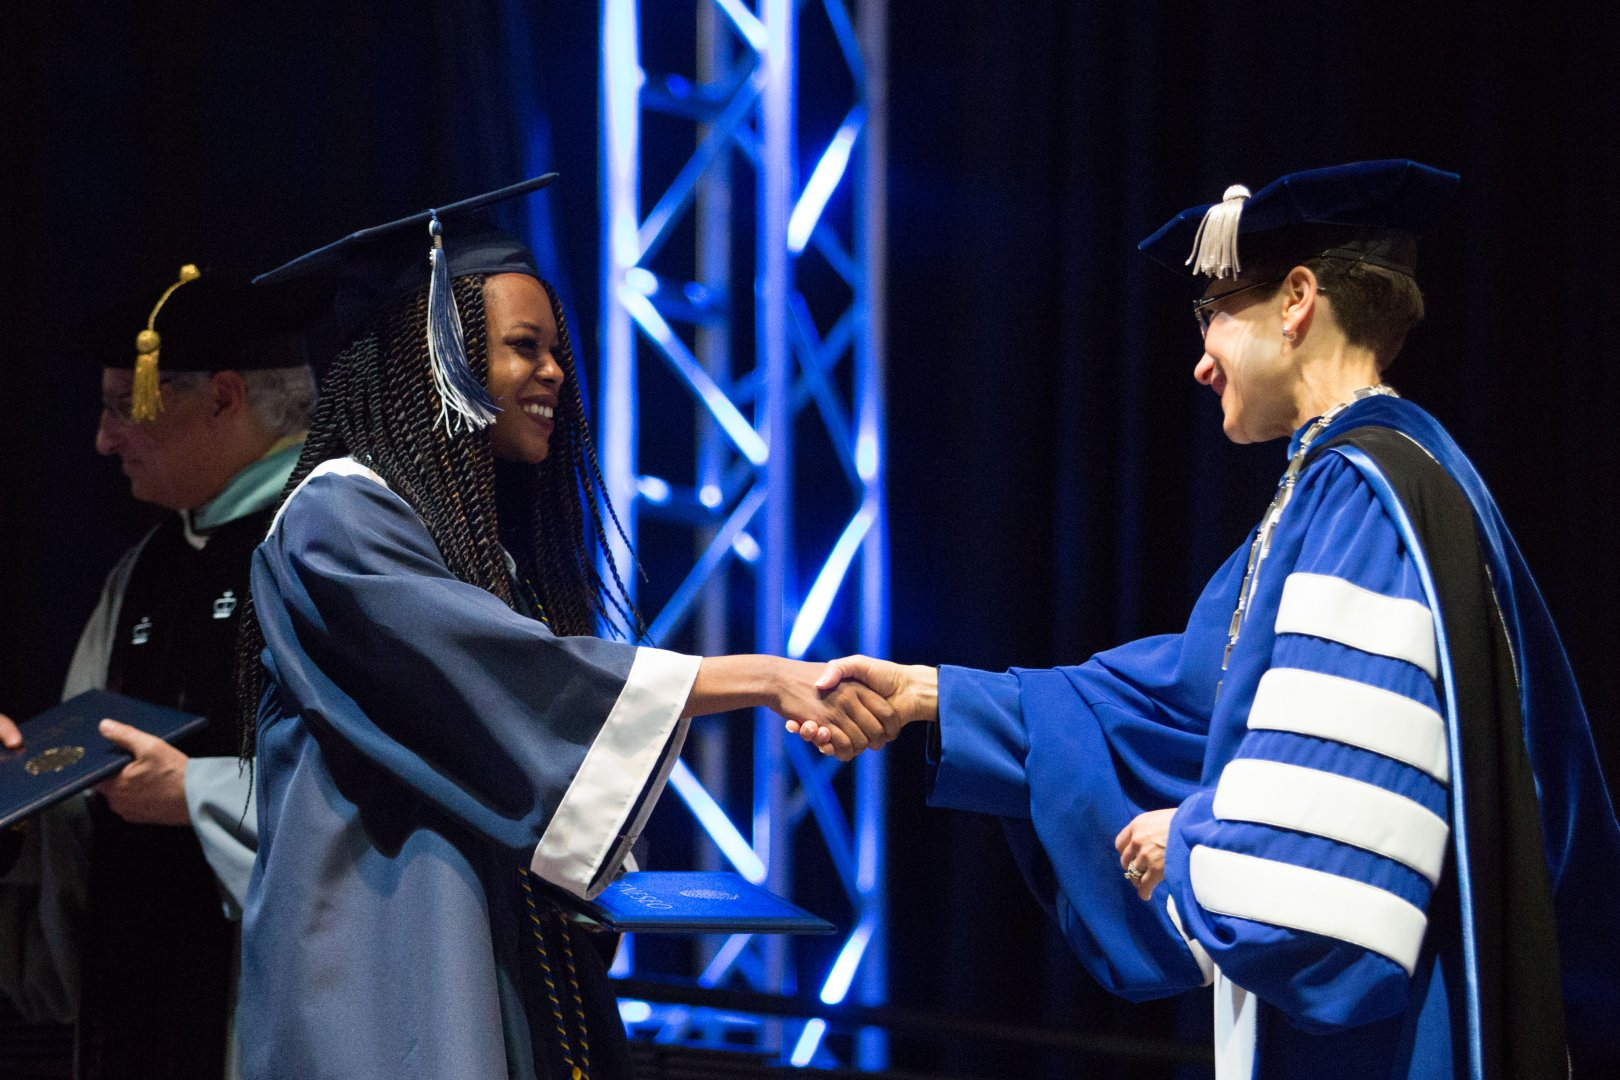 Commencement, accepting diplomas